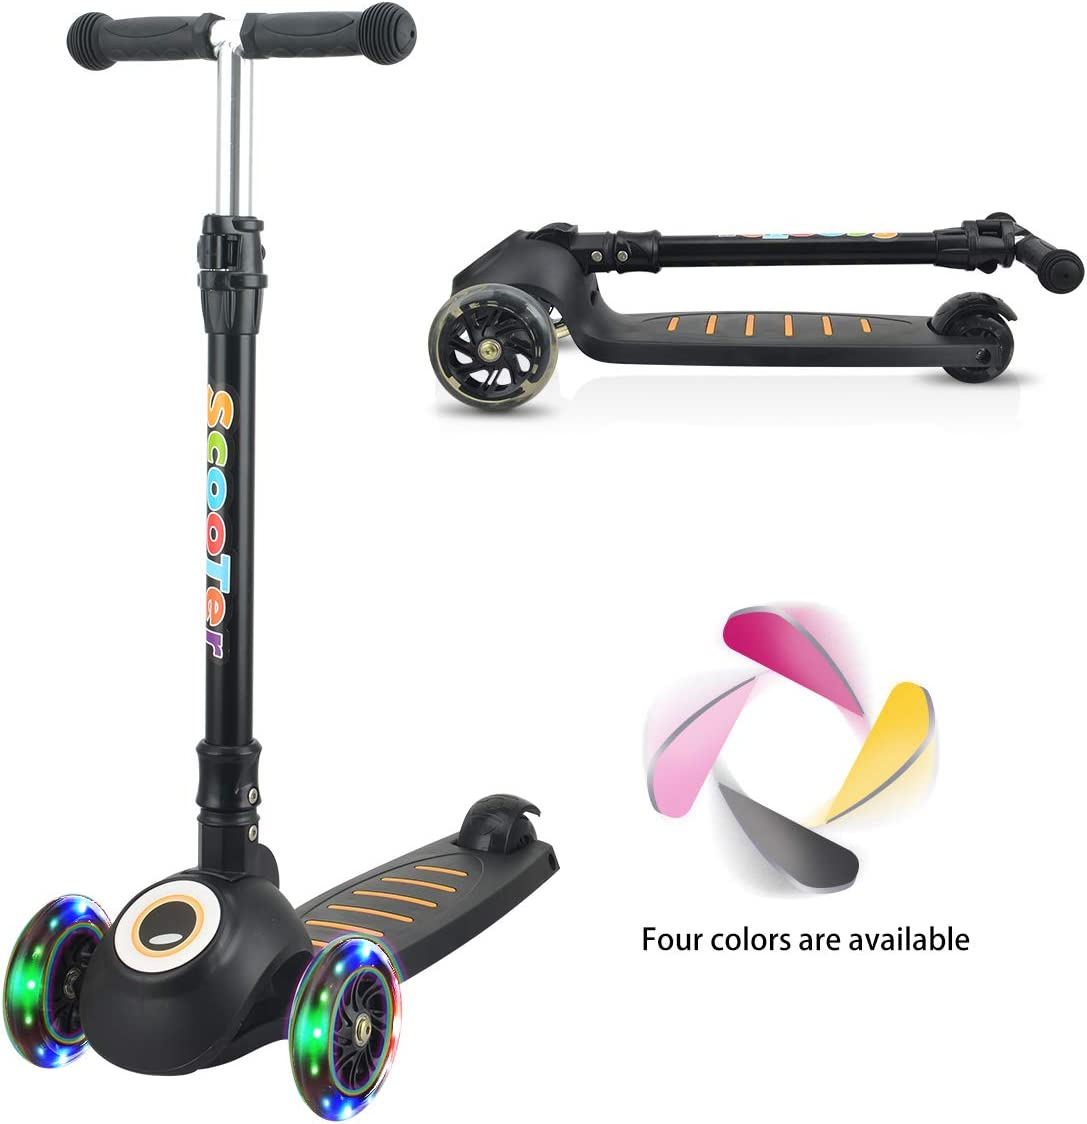 Kick Scooter for Kids, 3 Wheel Scooter for Toddlers Girls Boys with Folding T-Bar, 4 Adjustable Height and Flashing PU Wheels, Lean to Steer for Children from 2-14 Year-Old